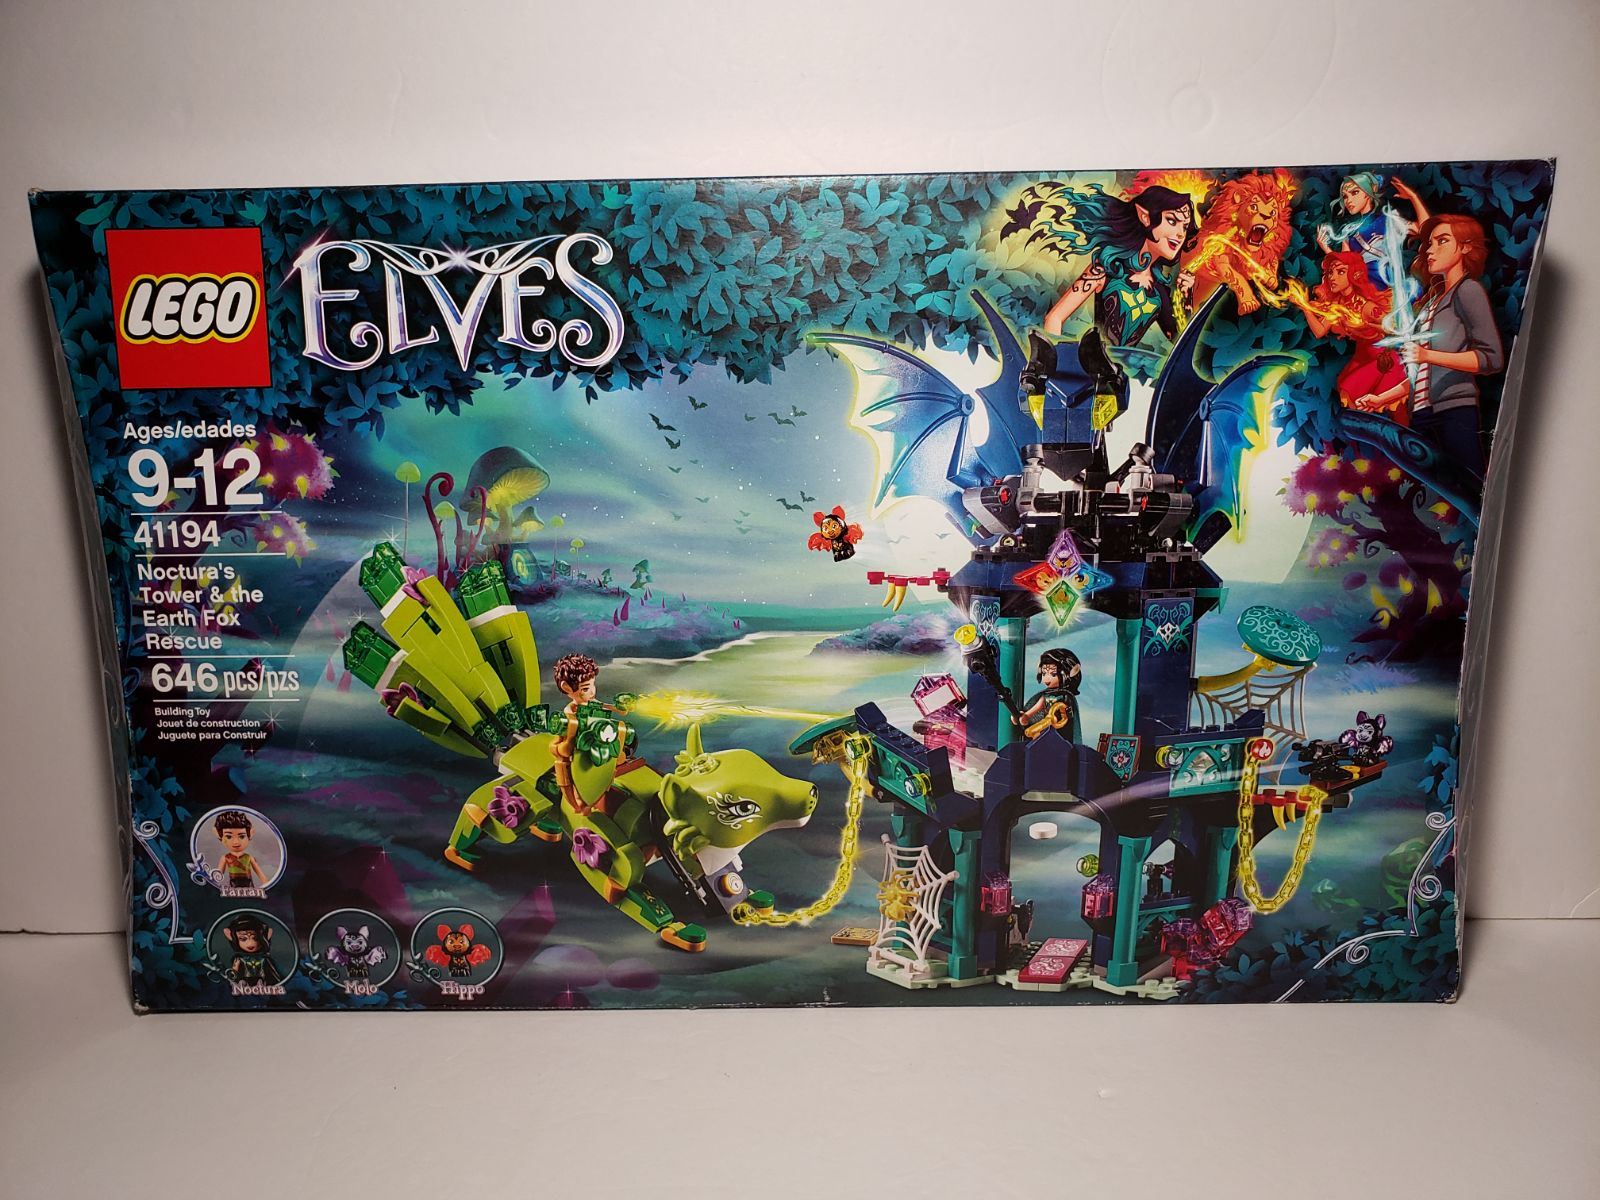 Lego Elves Noctura's Tower&The Earth Fox